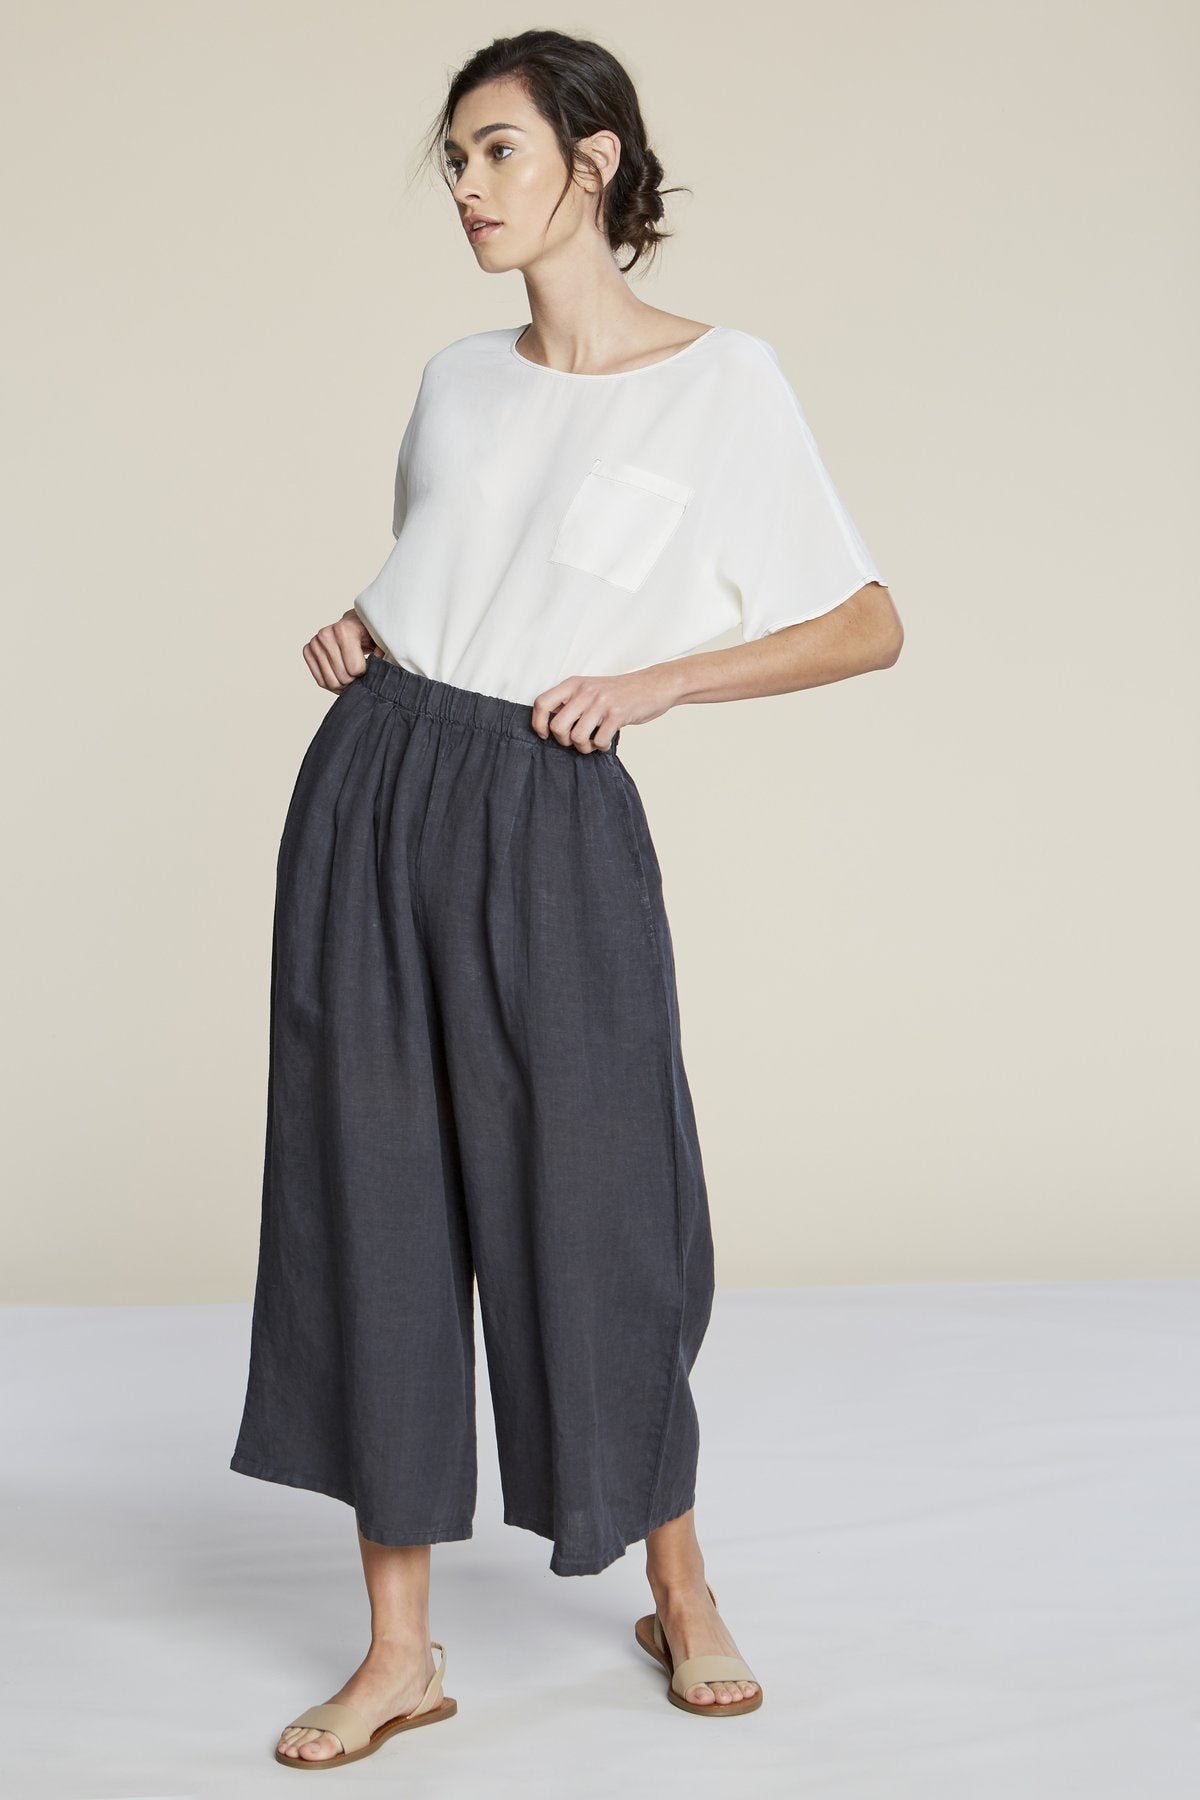 ab040a366b0b Filosofia cropped linen Hailey Pants elastic waist | pipe and row